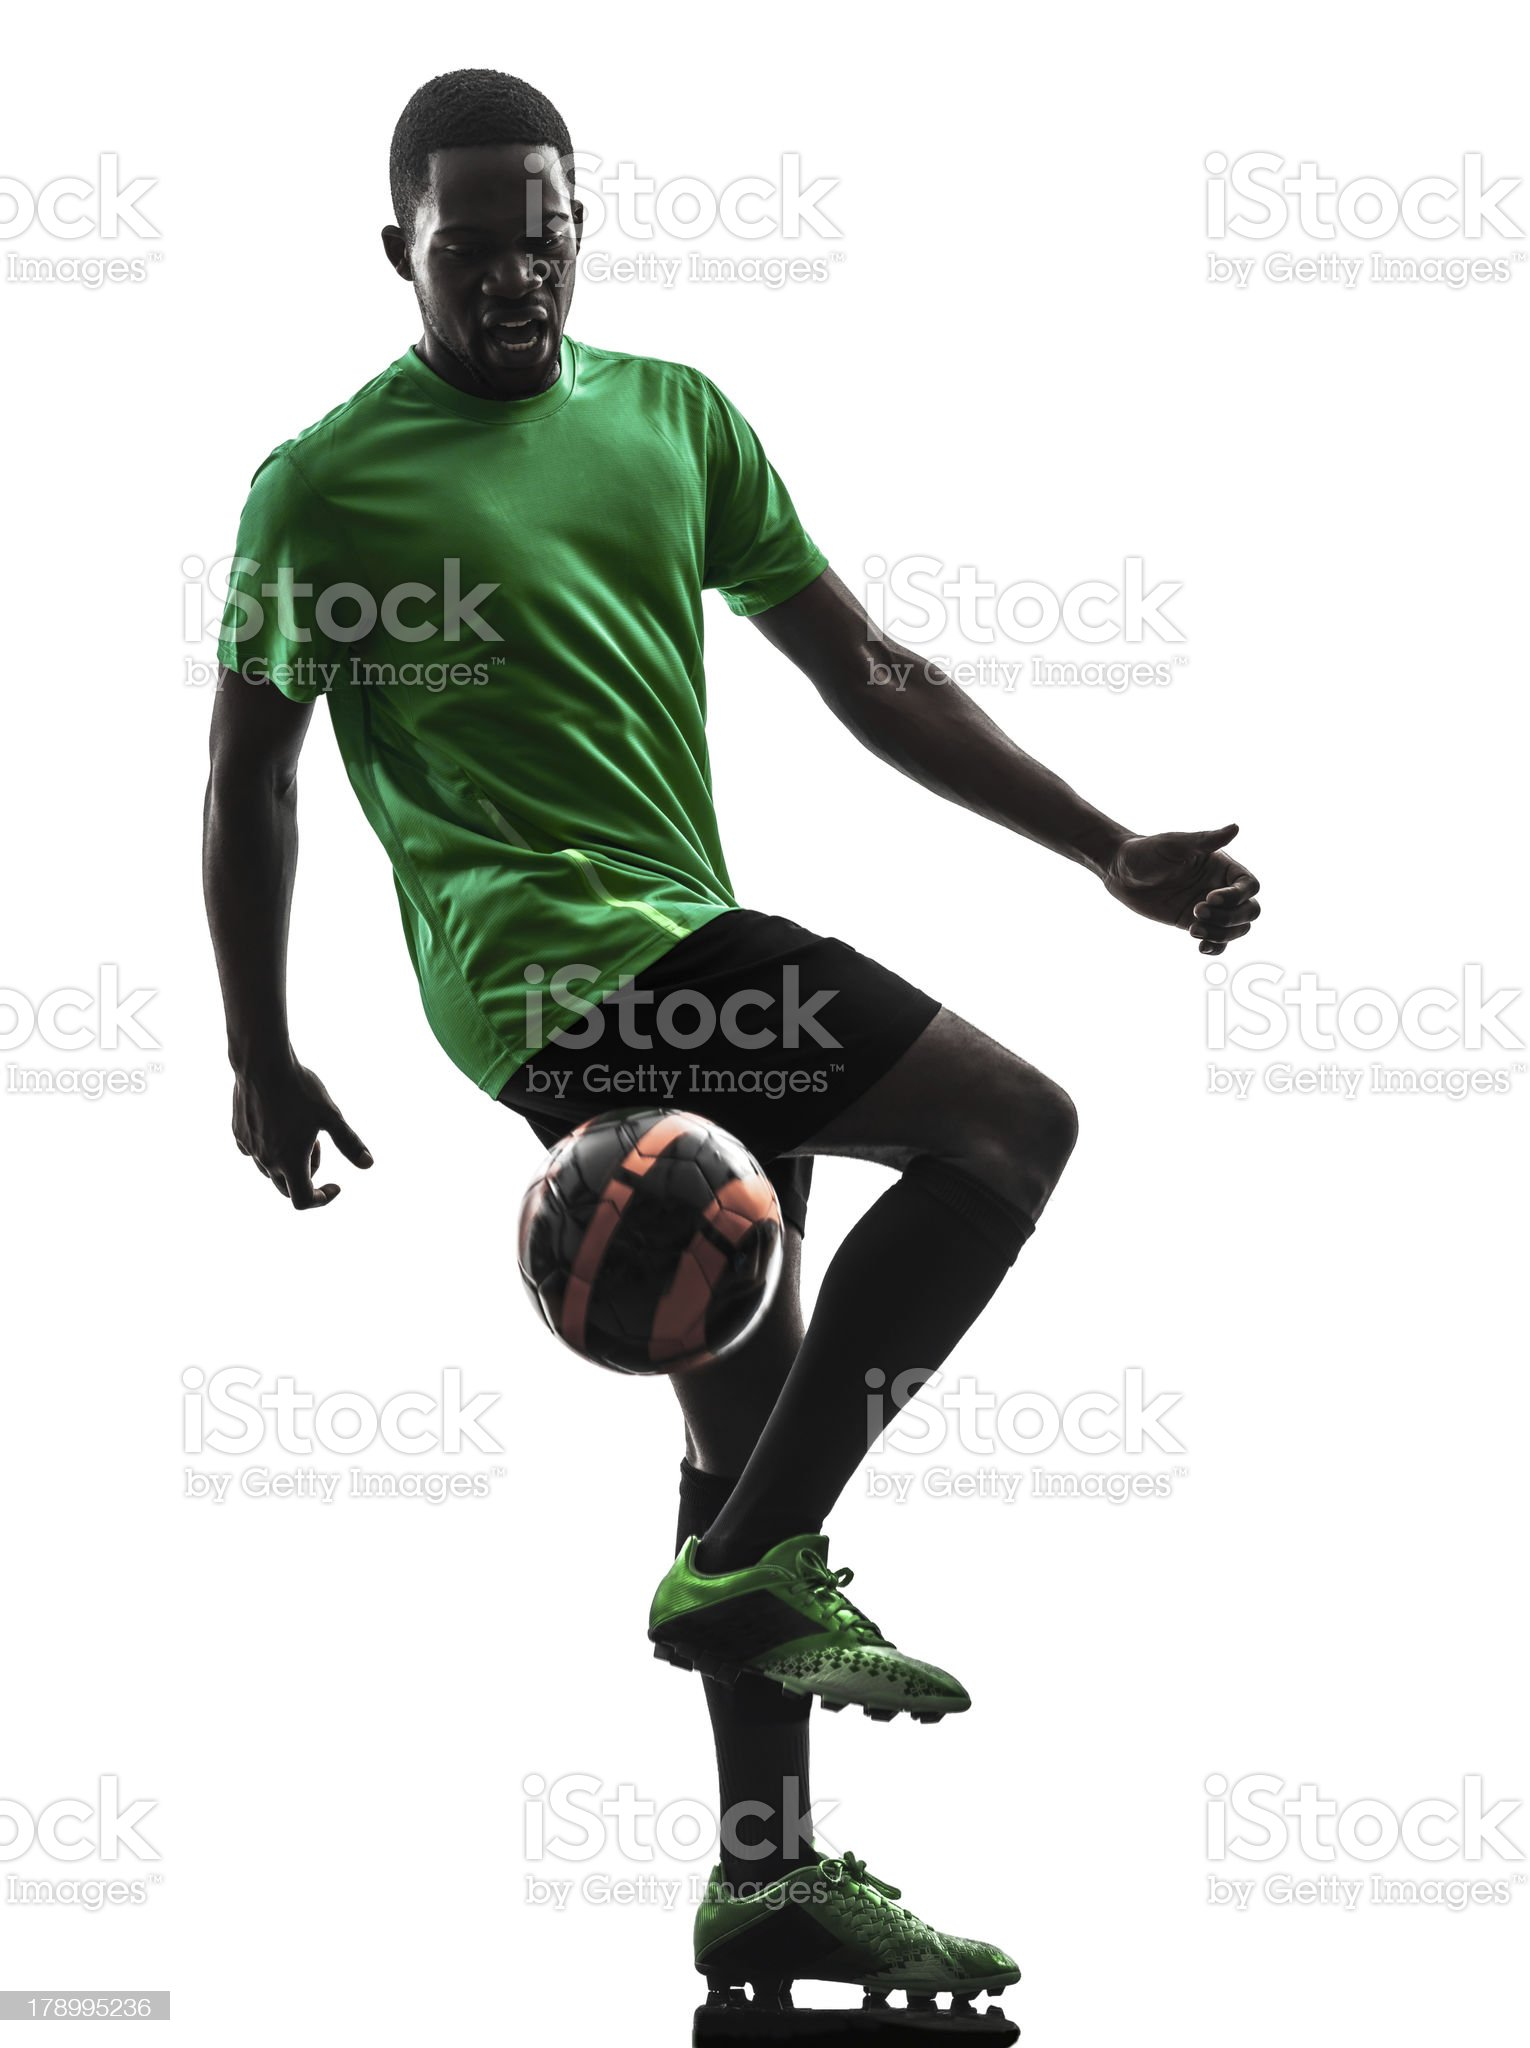 african man soccer player  juggling silhouette royalty-free stock photo